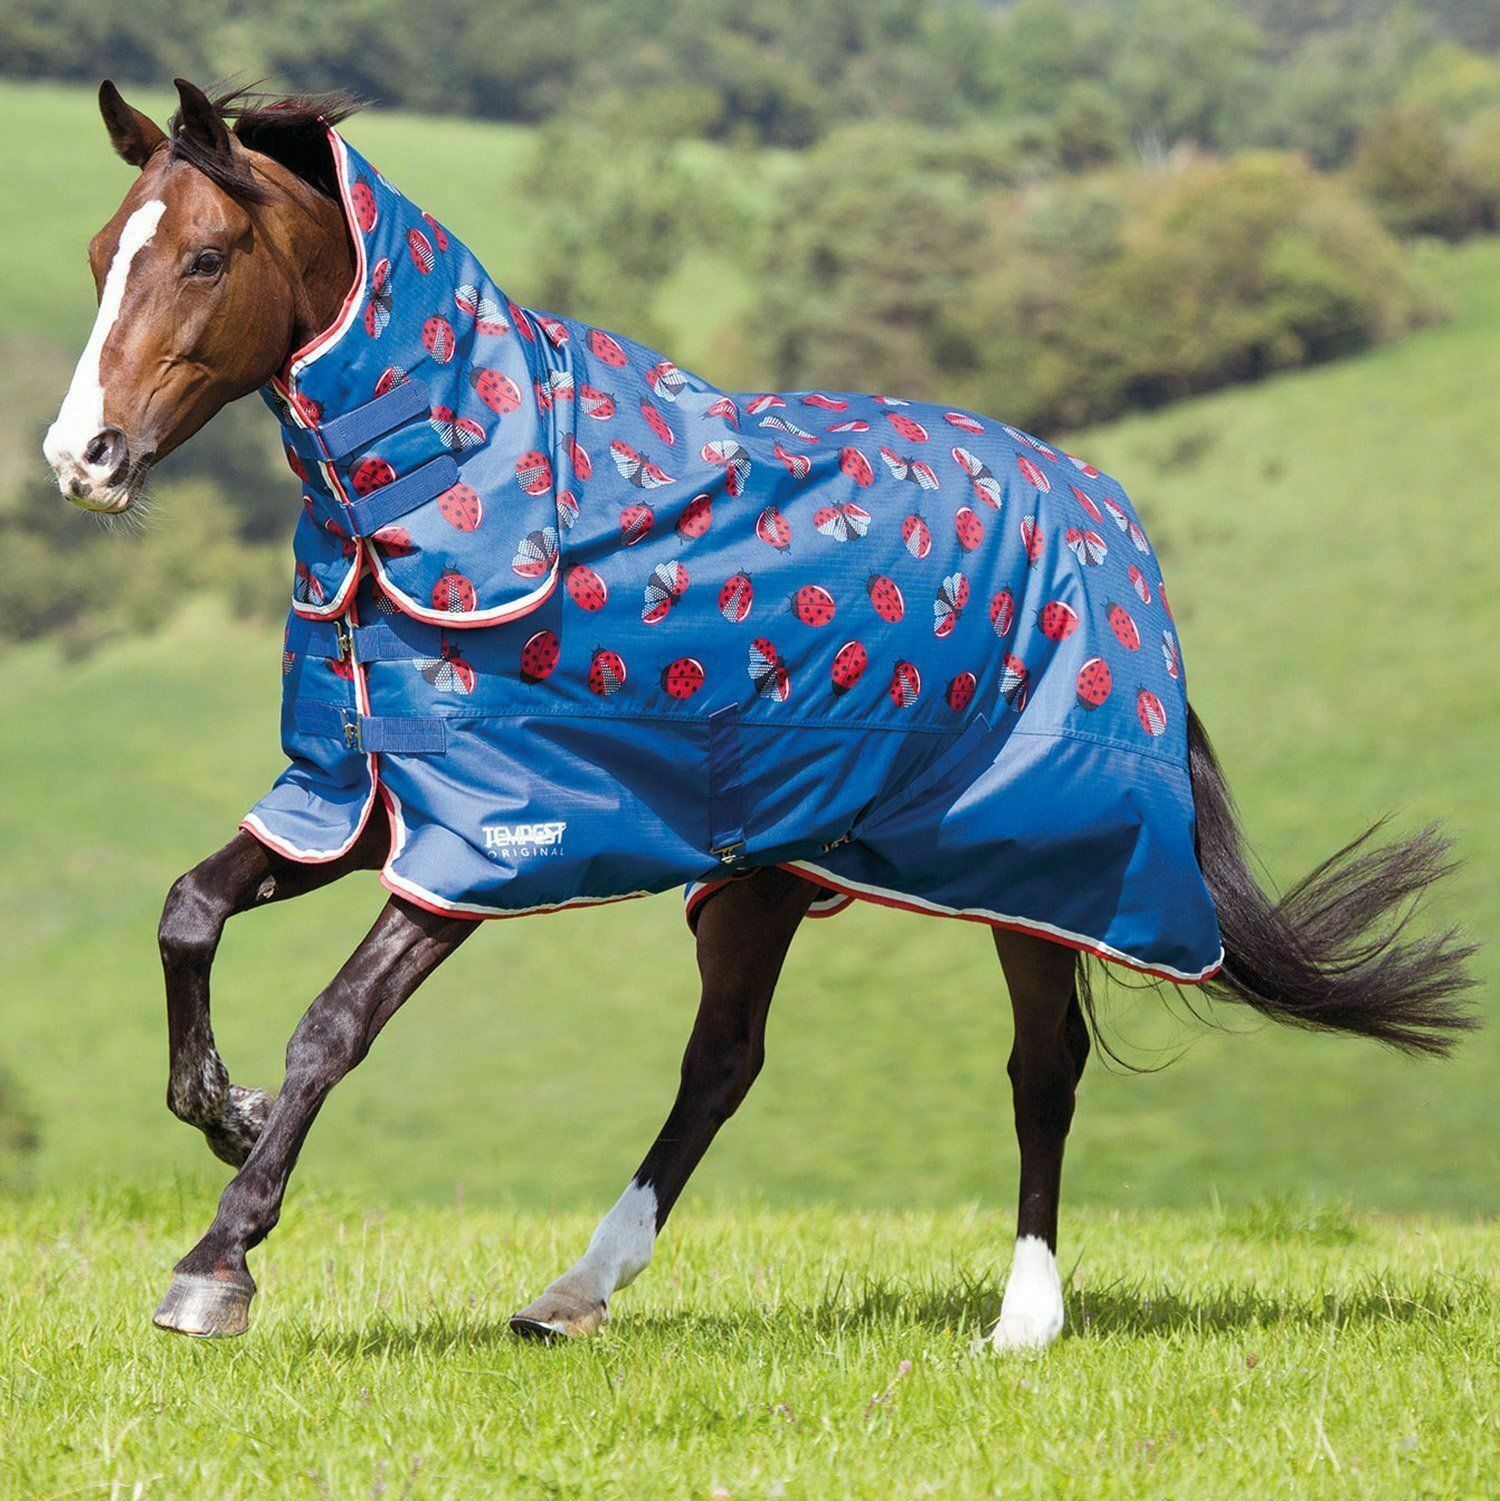 Shires Tempest 200G Combo Affluenza Alle Urne, Coccinelle stampa 6FT 6 Nuovo con etichette